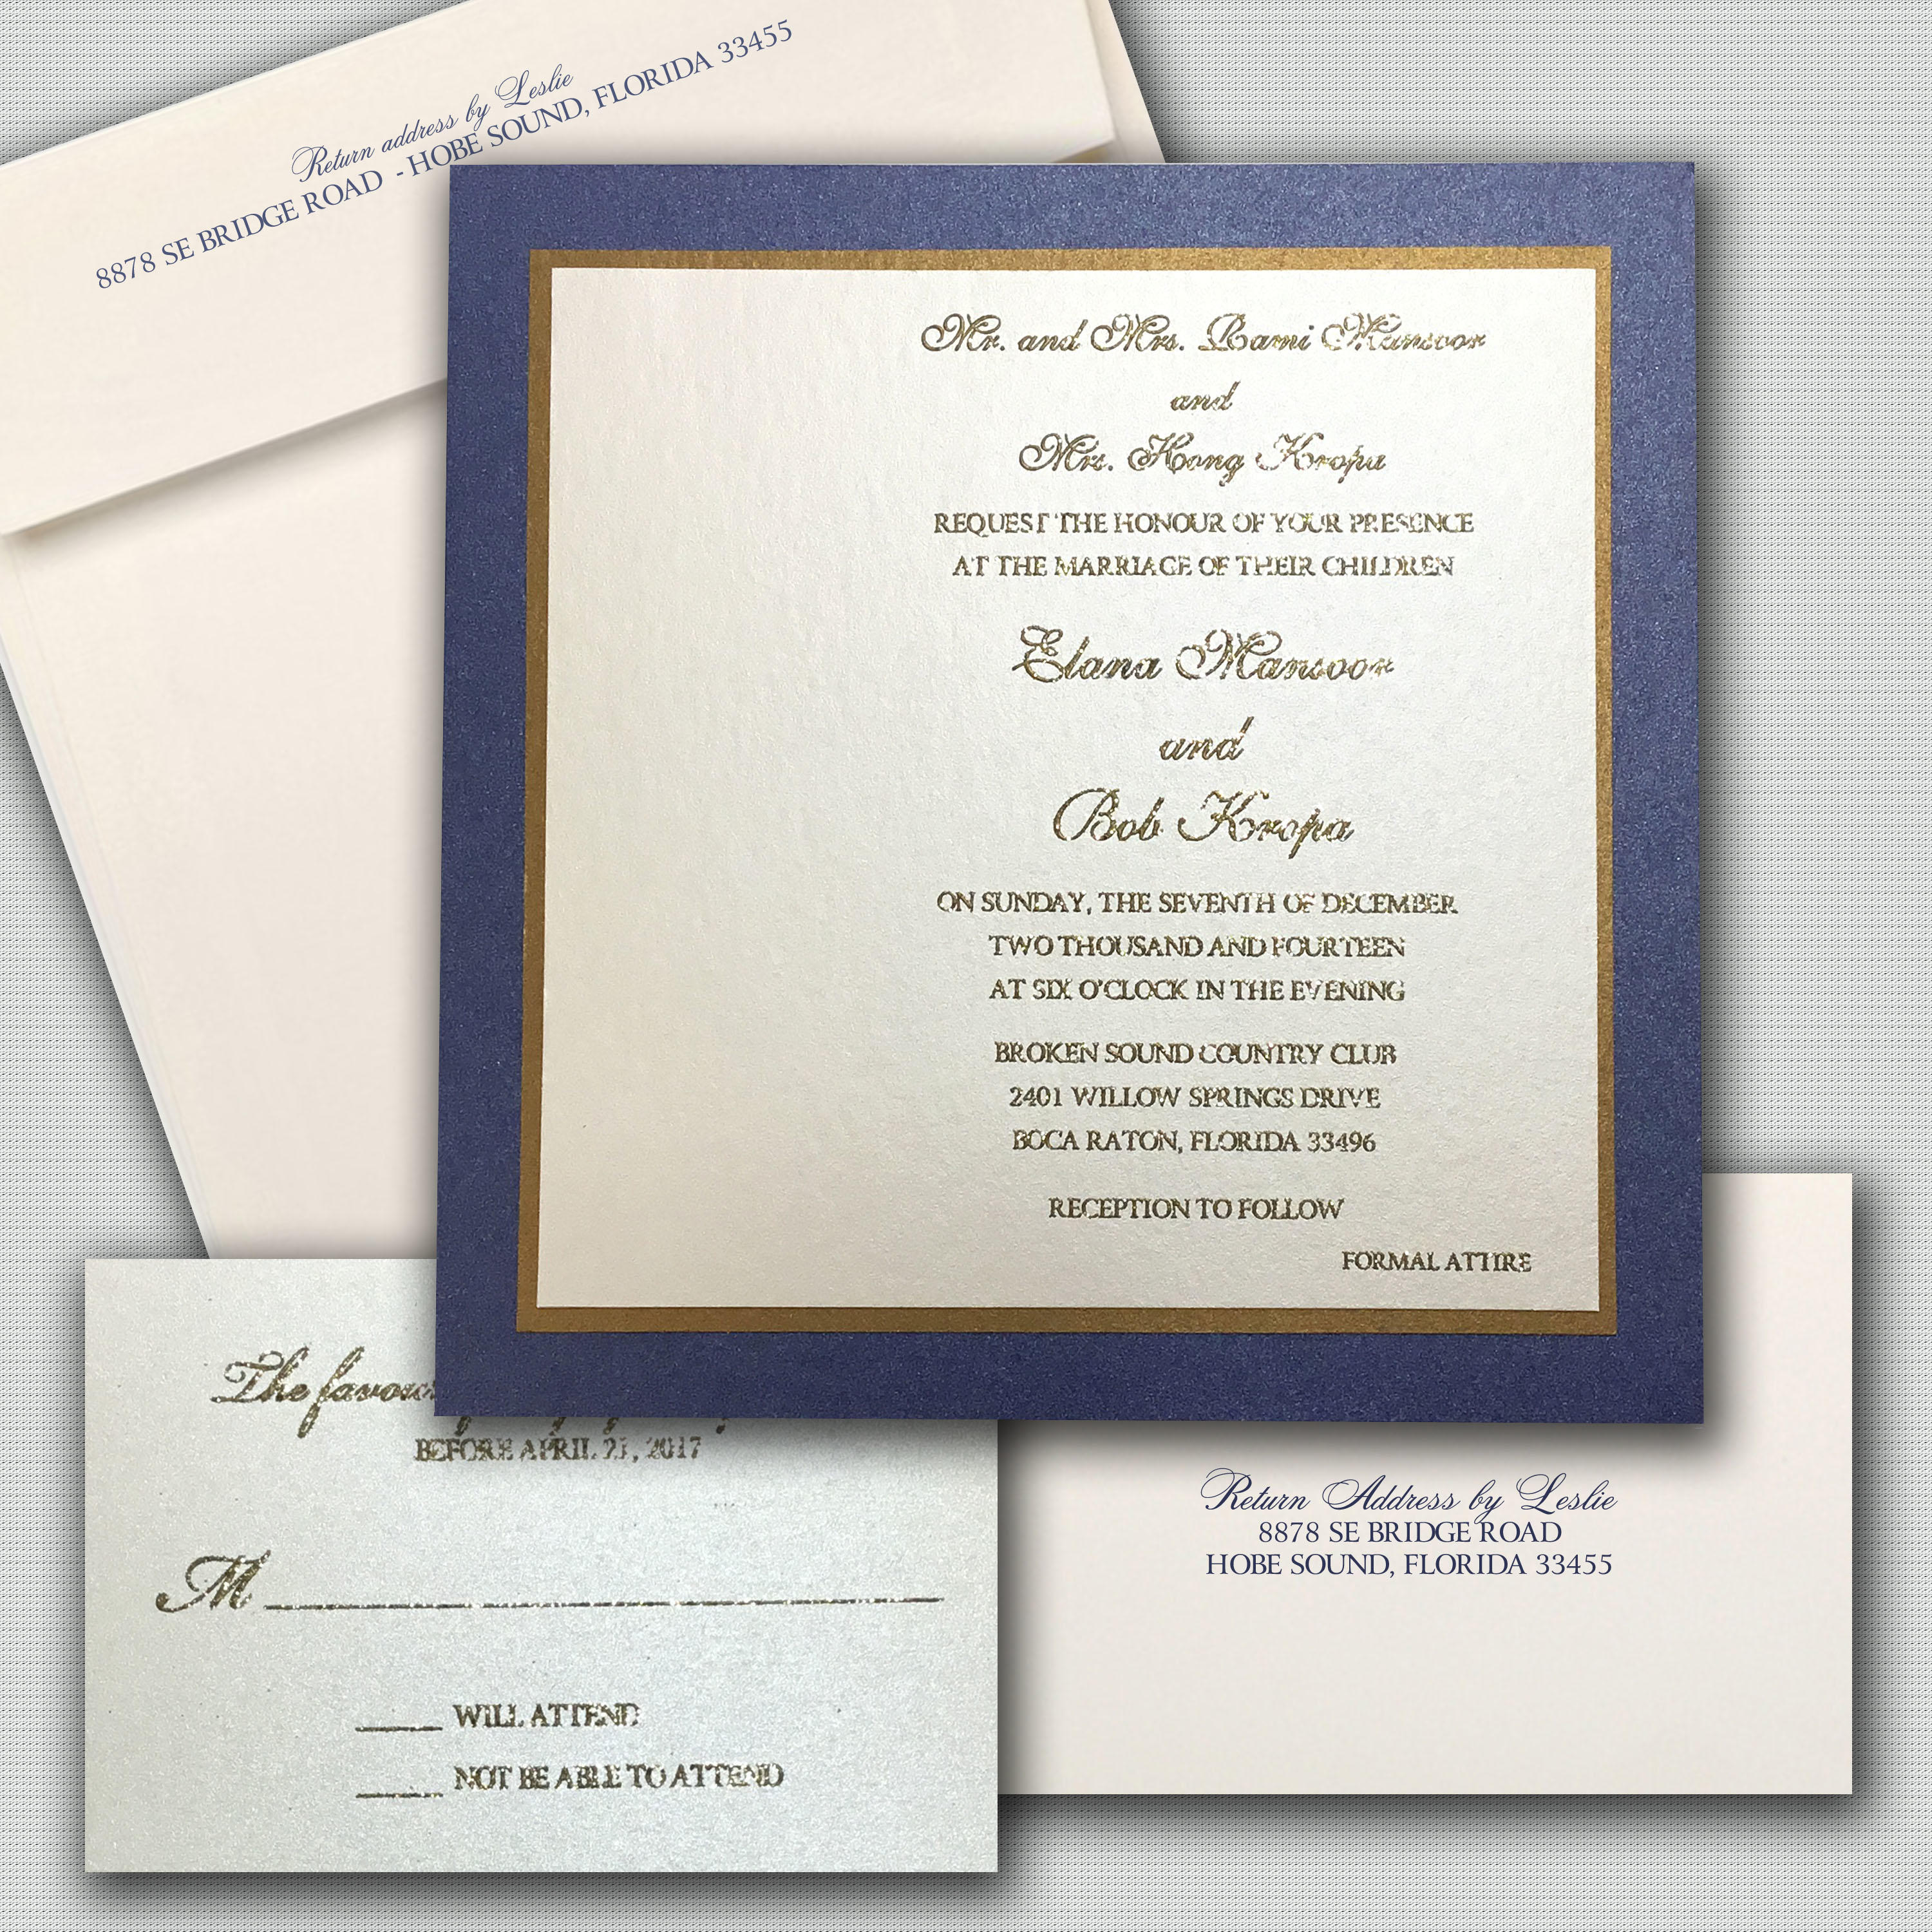 Leslie Store Wedding Invitations & Stationery image 13